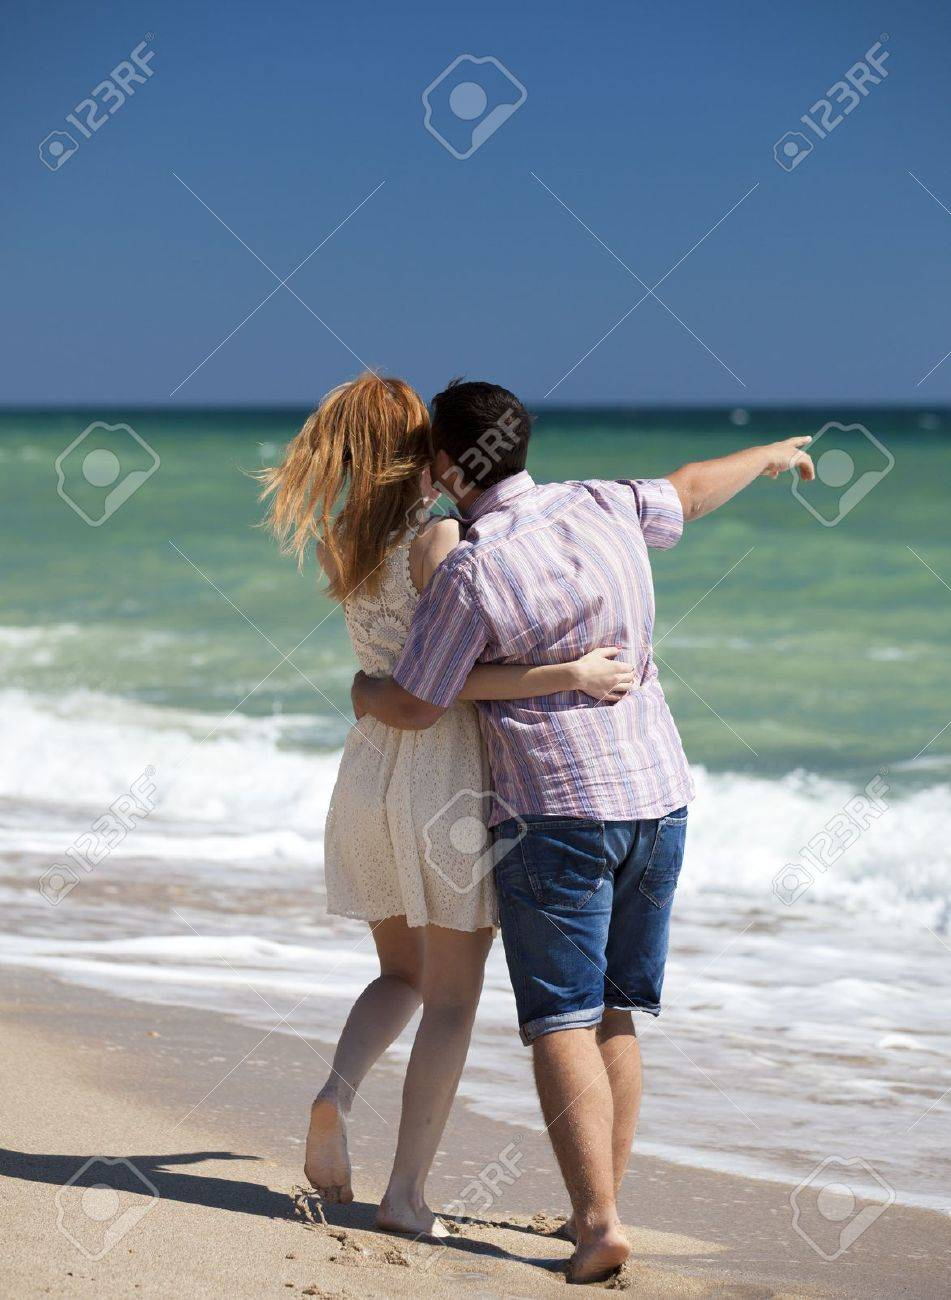 Couple at the beach. Stock Photo - 15071731